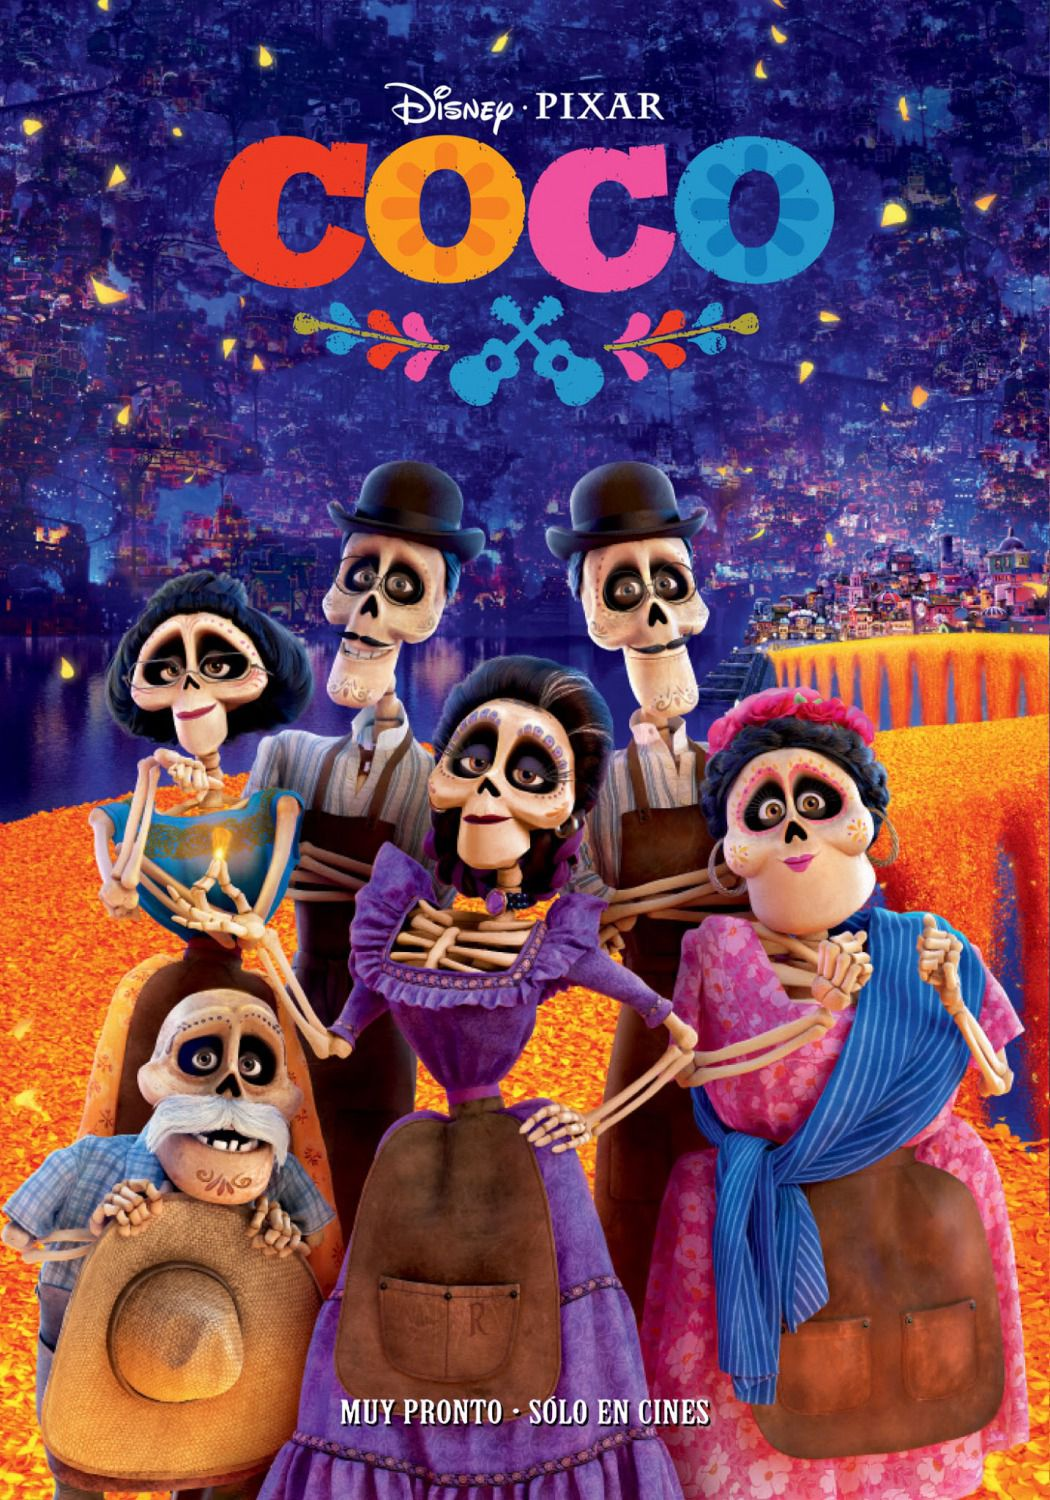 Coco -  Disney Pixar animated film poster - dead family ancestors